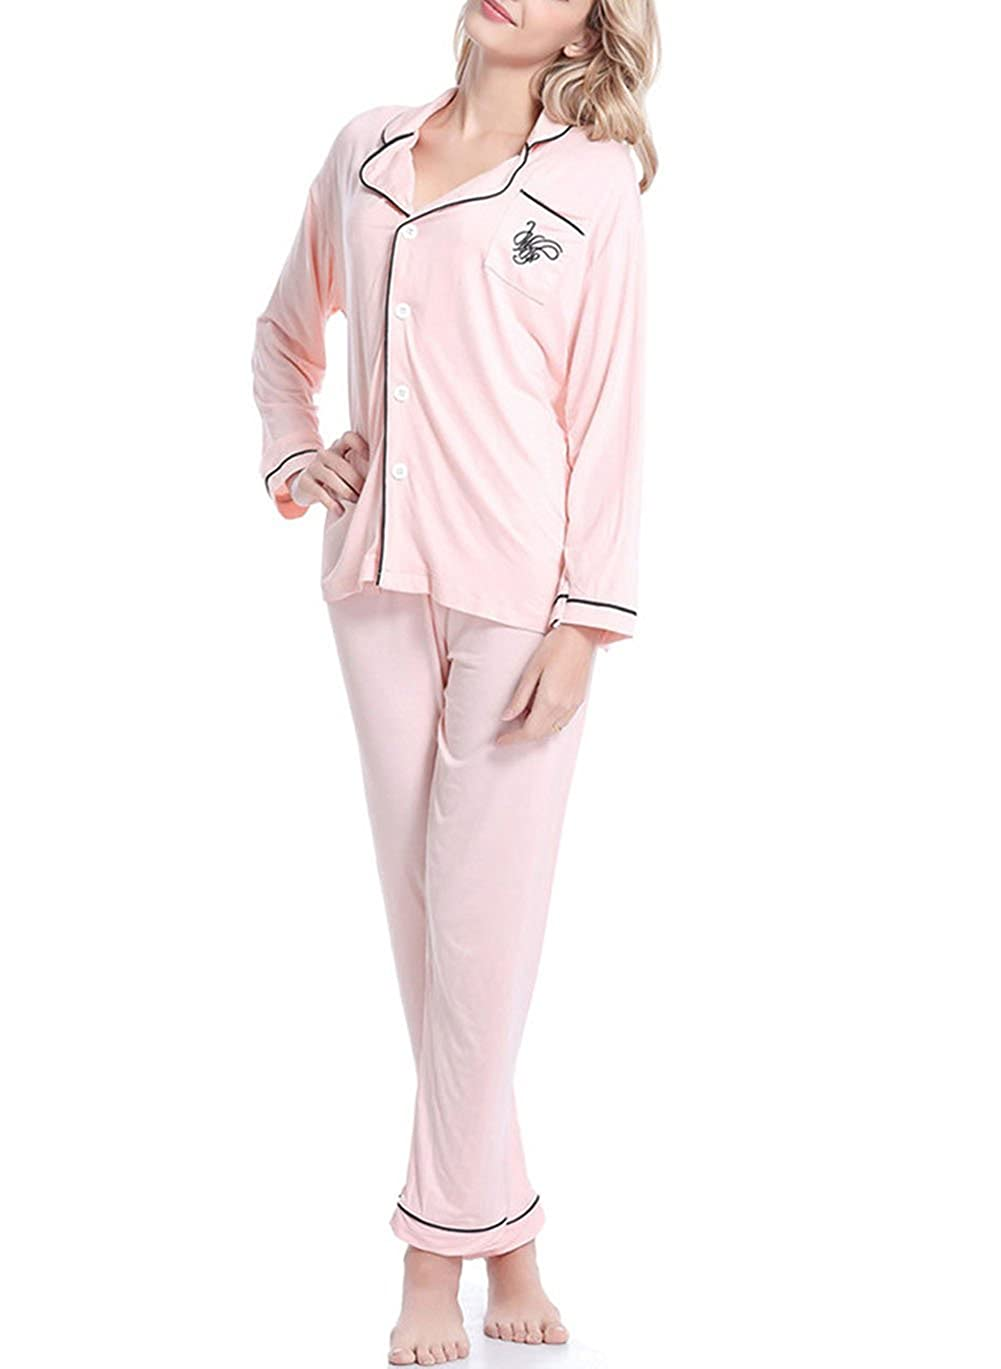 YAXIUFEN Women Plus Size Long Sleeve Breastfeeding Maternity Nursing Pajama Set Nightwear Medium